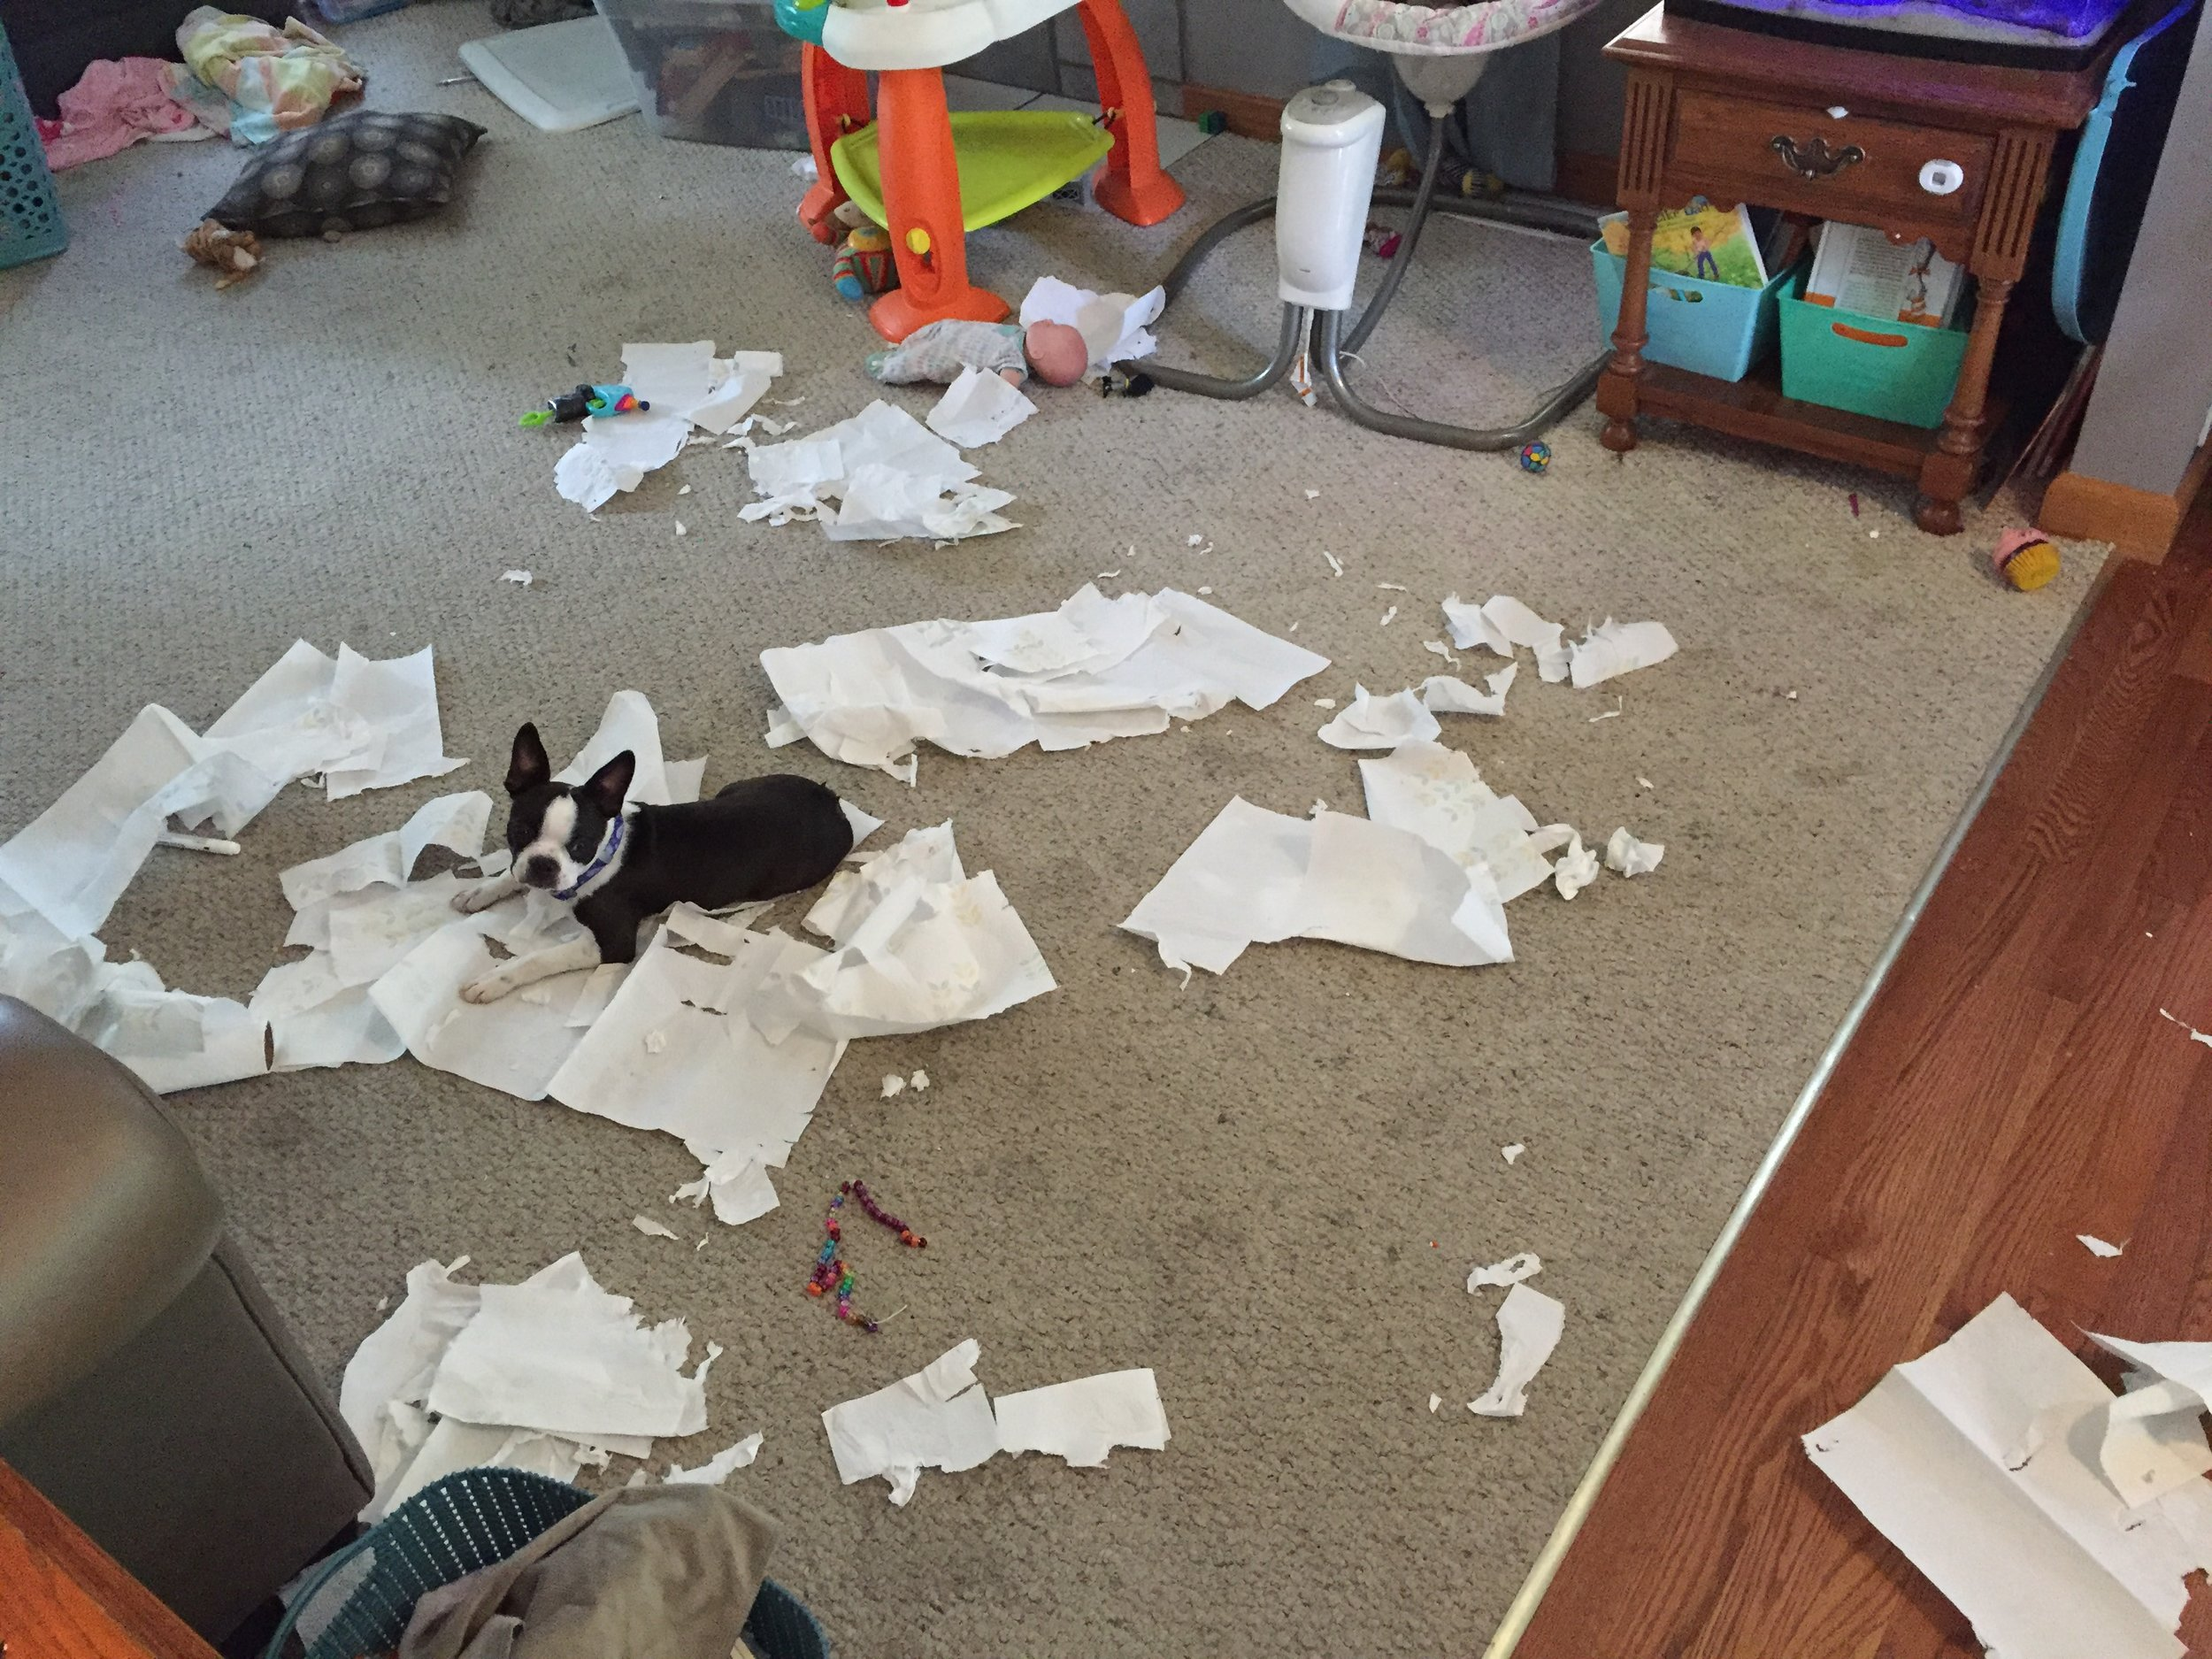 This was a prior paper towel incident. While I was downstairs cleaning the basement, she was upstairs happily uncleaning the family room. Dogs these days. Sheesh.